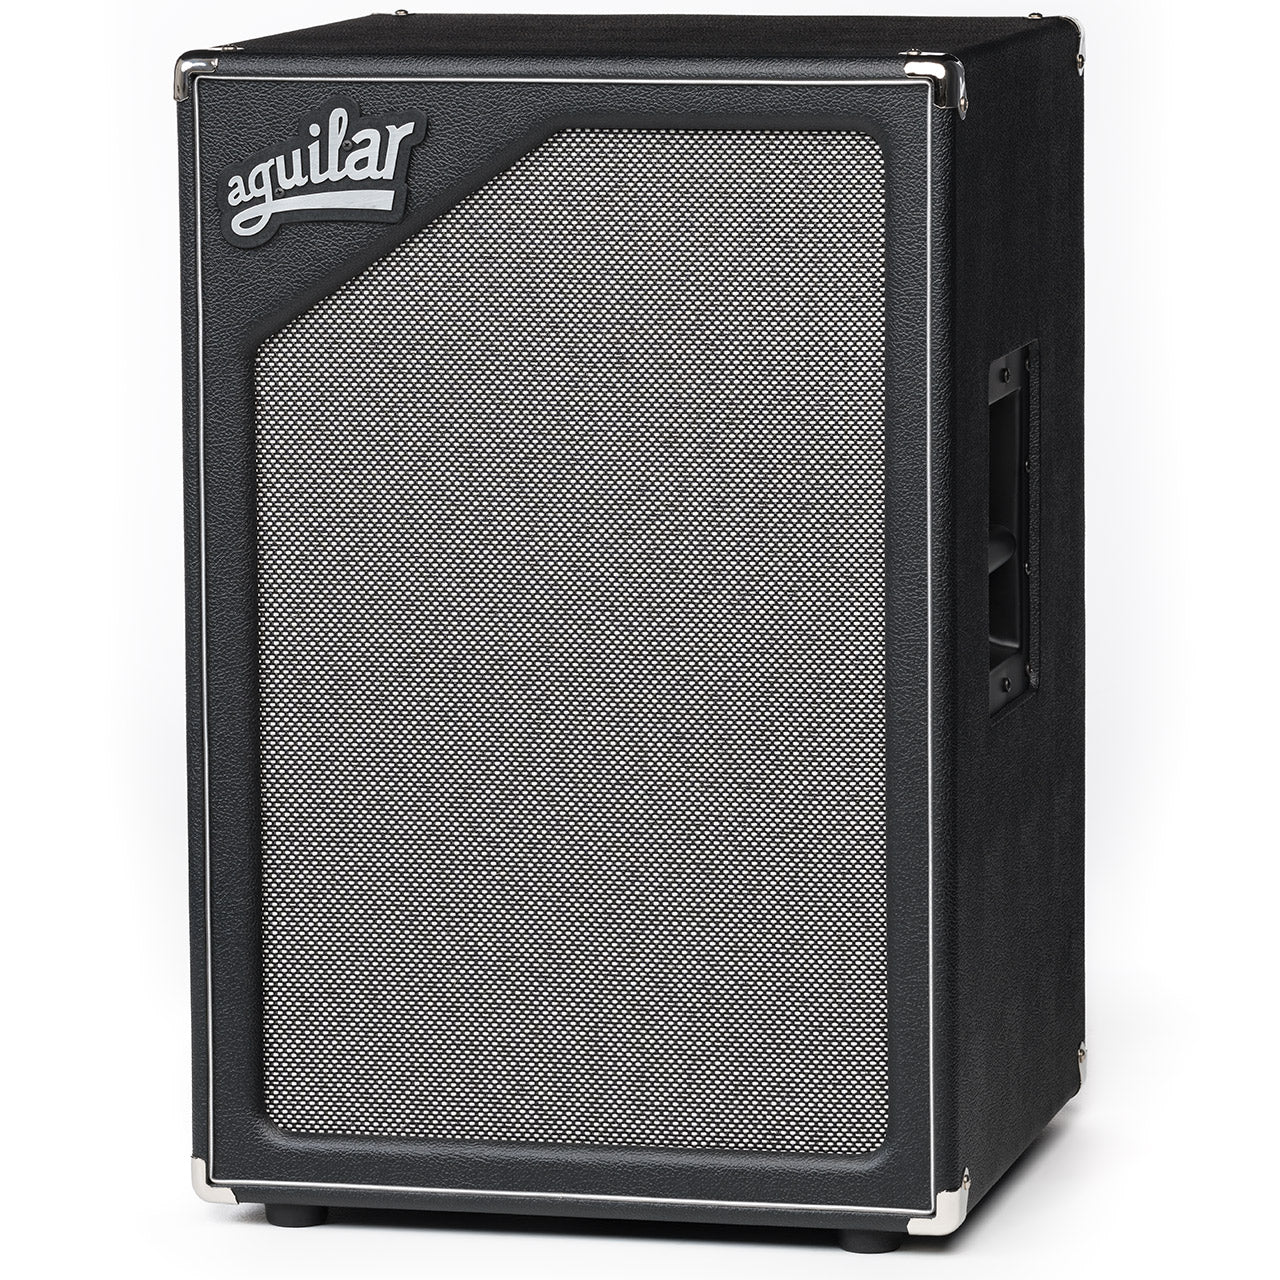 Aguilar SL 212 Super Light Bass Speaker Cabinet